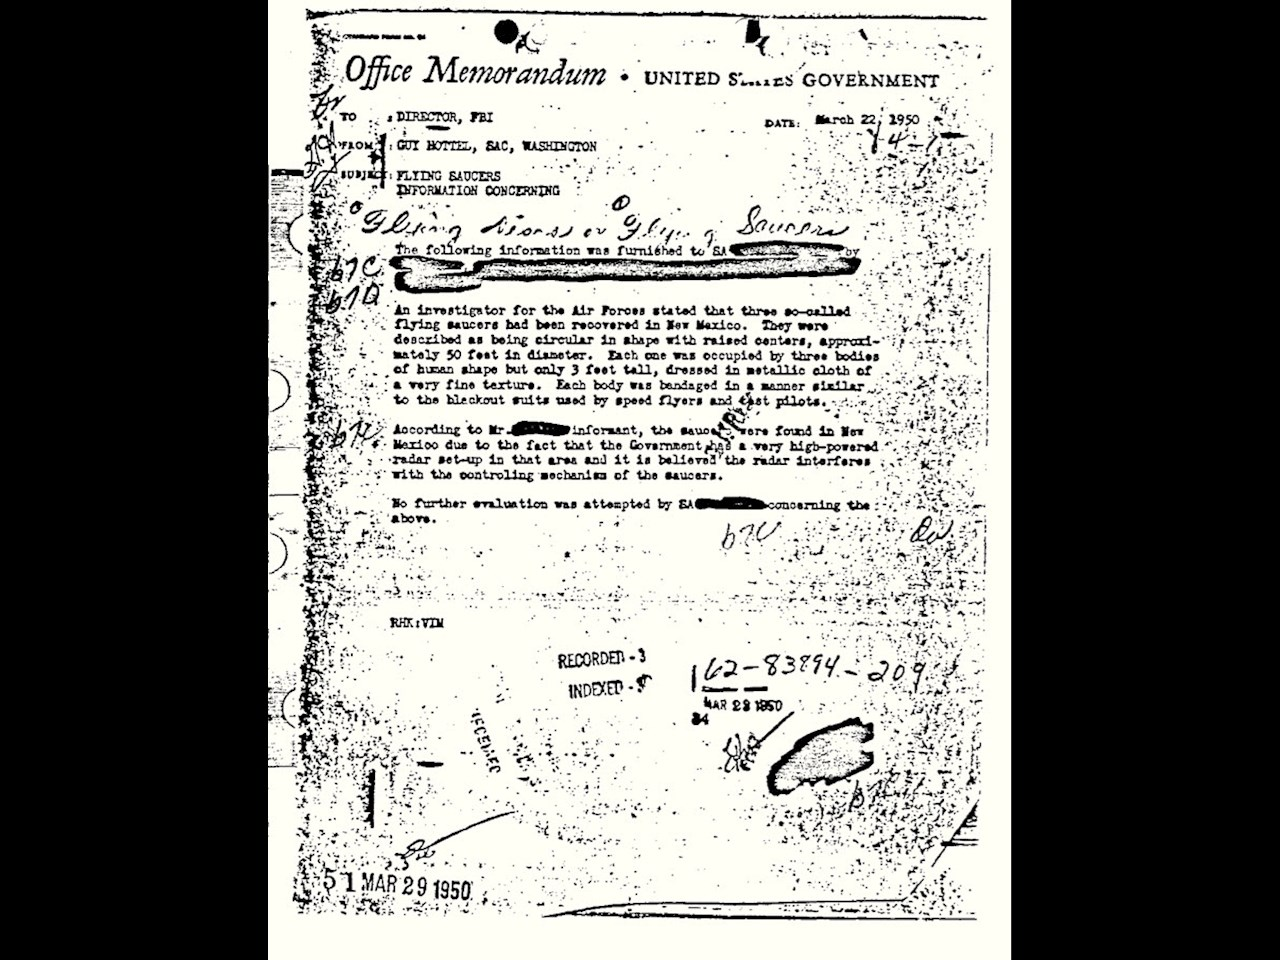 Flying saucer memorandum from March 22, 1950